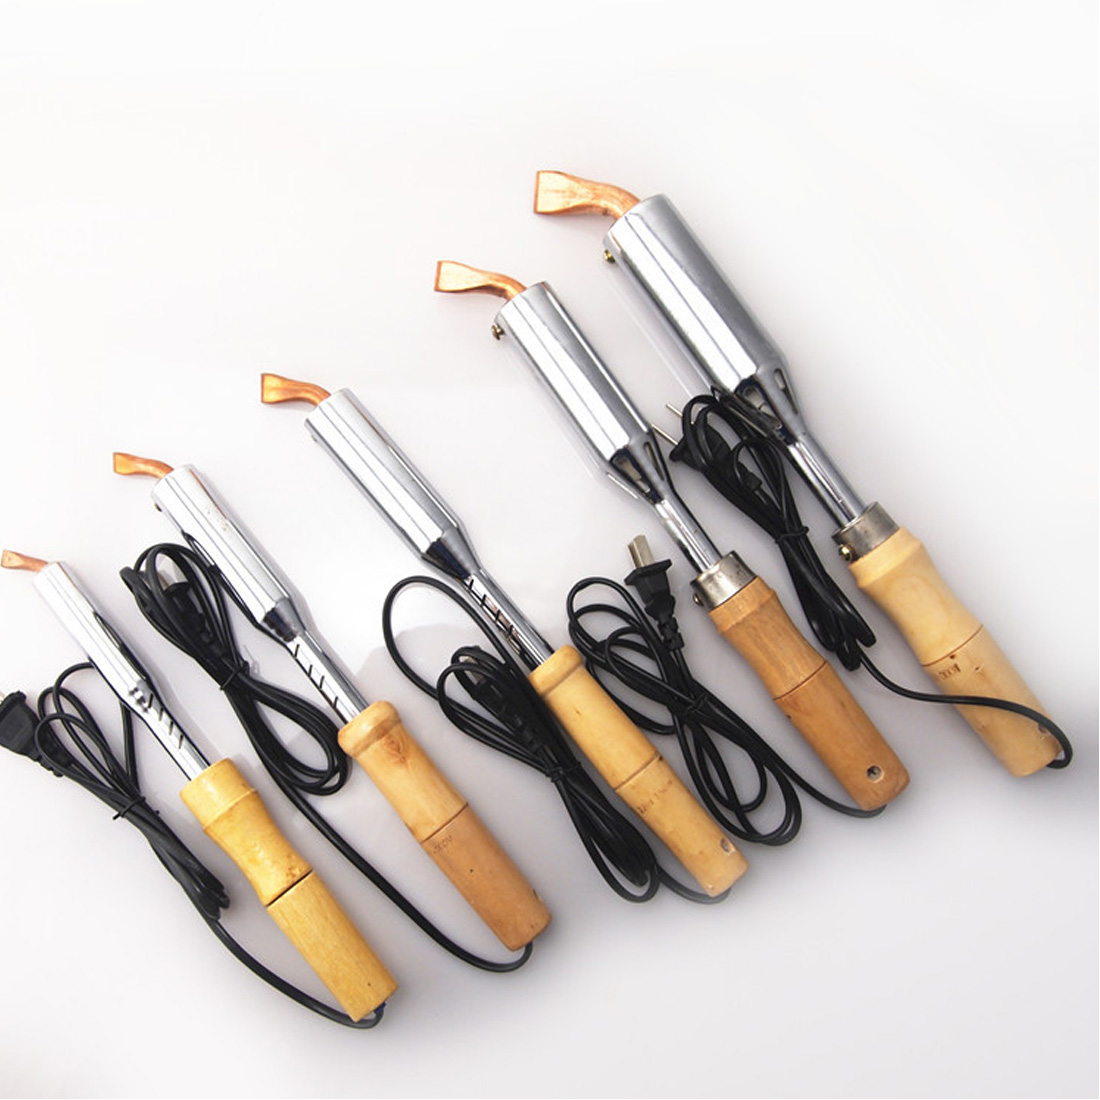 Hot  220V 50Hz Electric Soldering Iron High Power Chisel Tip Soldering Iron Chisel Tip Wood Handle